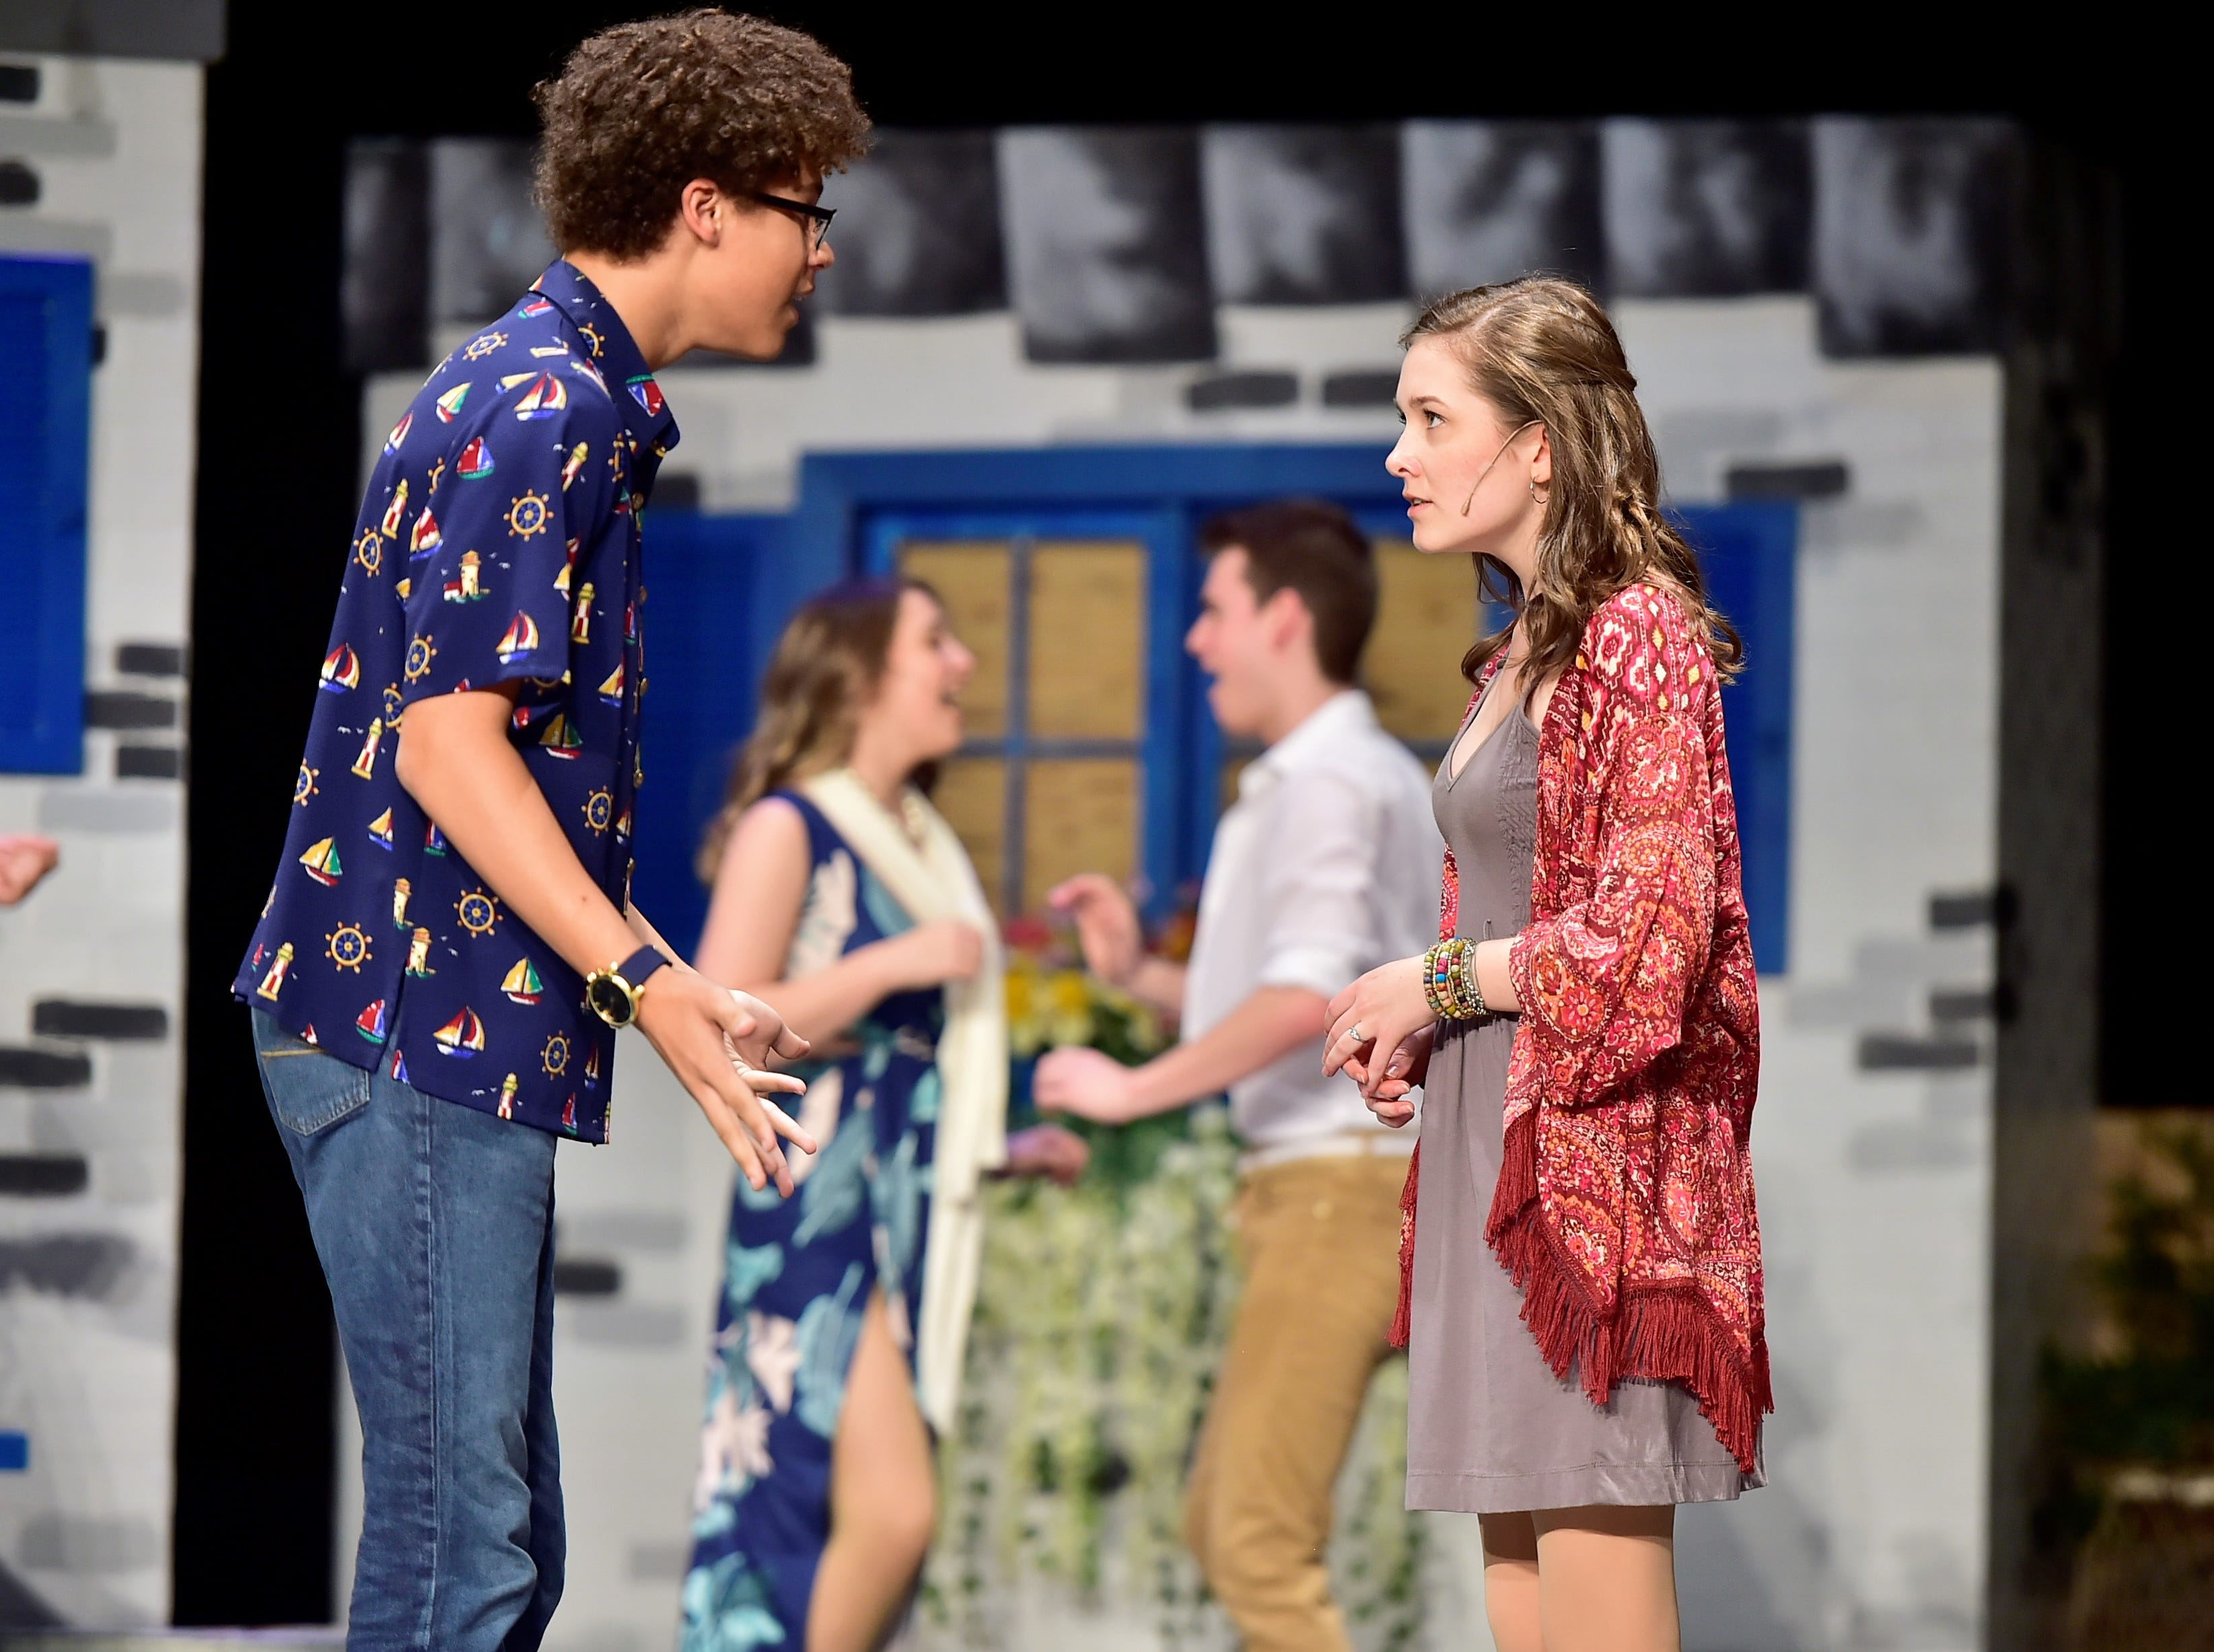 "Elijah Thomas (portraying Harry Bright) and Elise Monheim (as Sophie Sheridan) rehearse a scene from ""Mamma Mia!"" on Tuesday. The Chambersburg Area Senior High School Drama Club will perform the popular musical at 7:30 p.m. Friday and Saturday and 2:30 p.m. Saturday. Tickets ($8 for adults, $5 for students/children) will be sold at the door; no reserved seating. For more information, call 717-261-3322, ext. 80401."